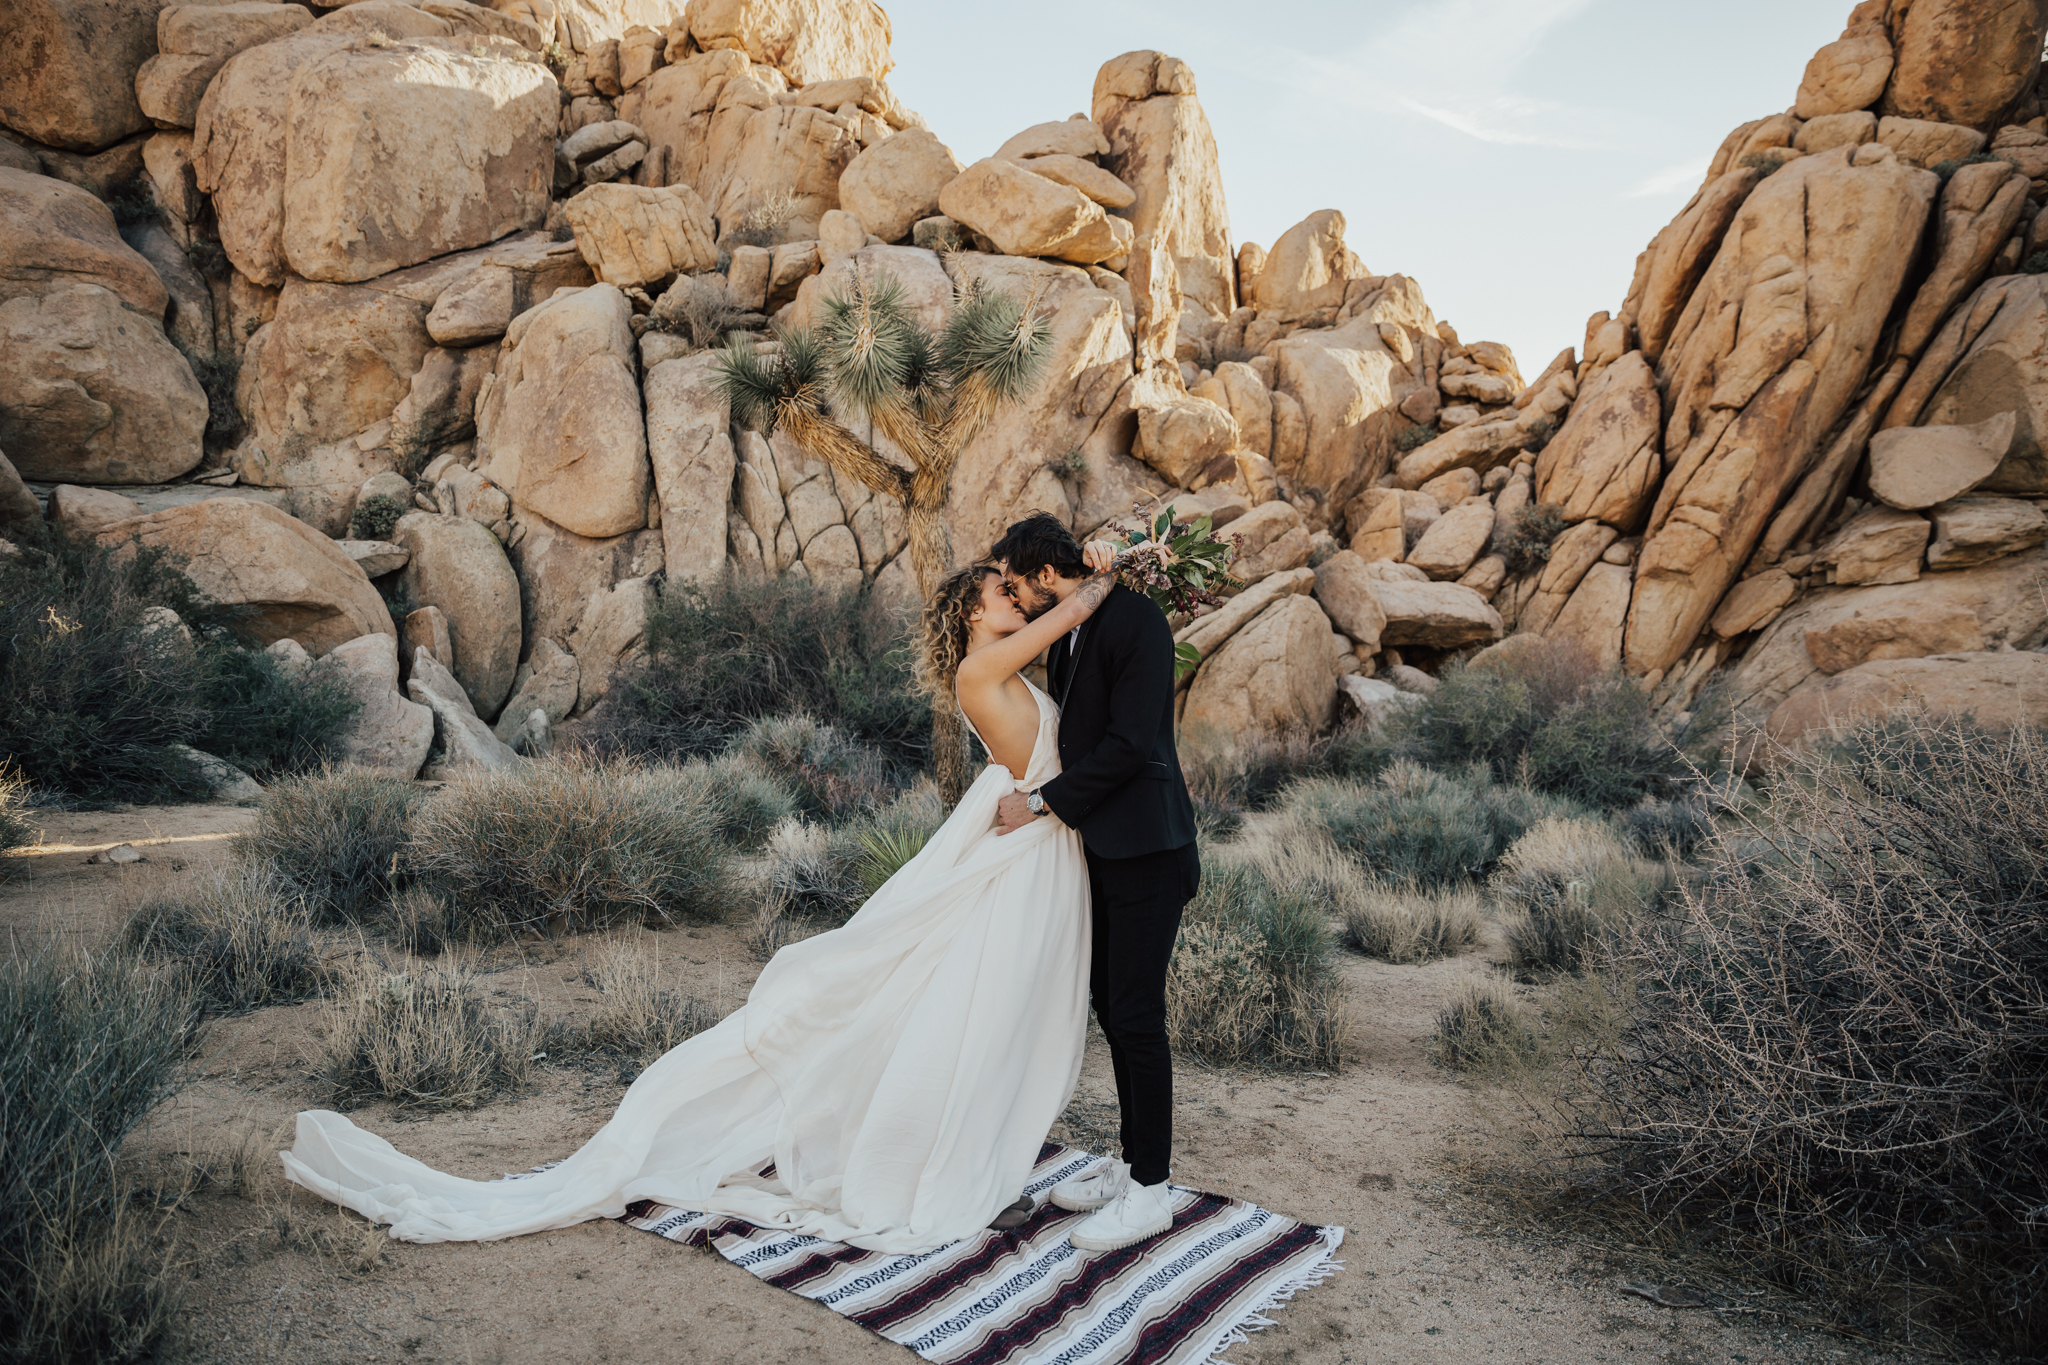 Desert bride and groom